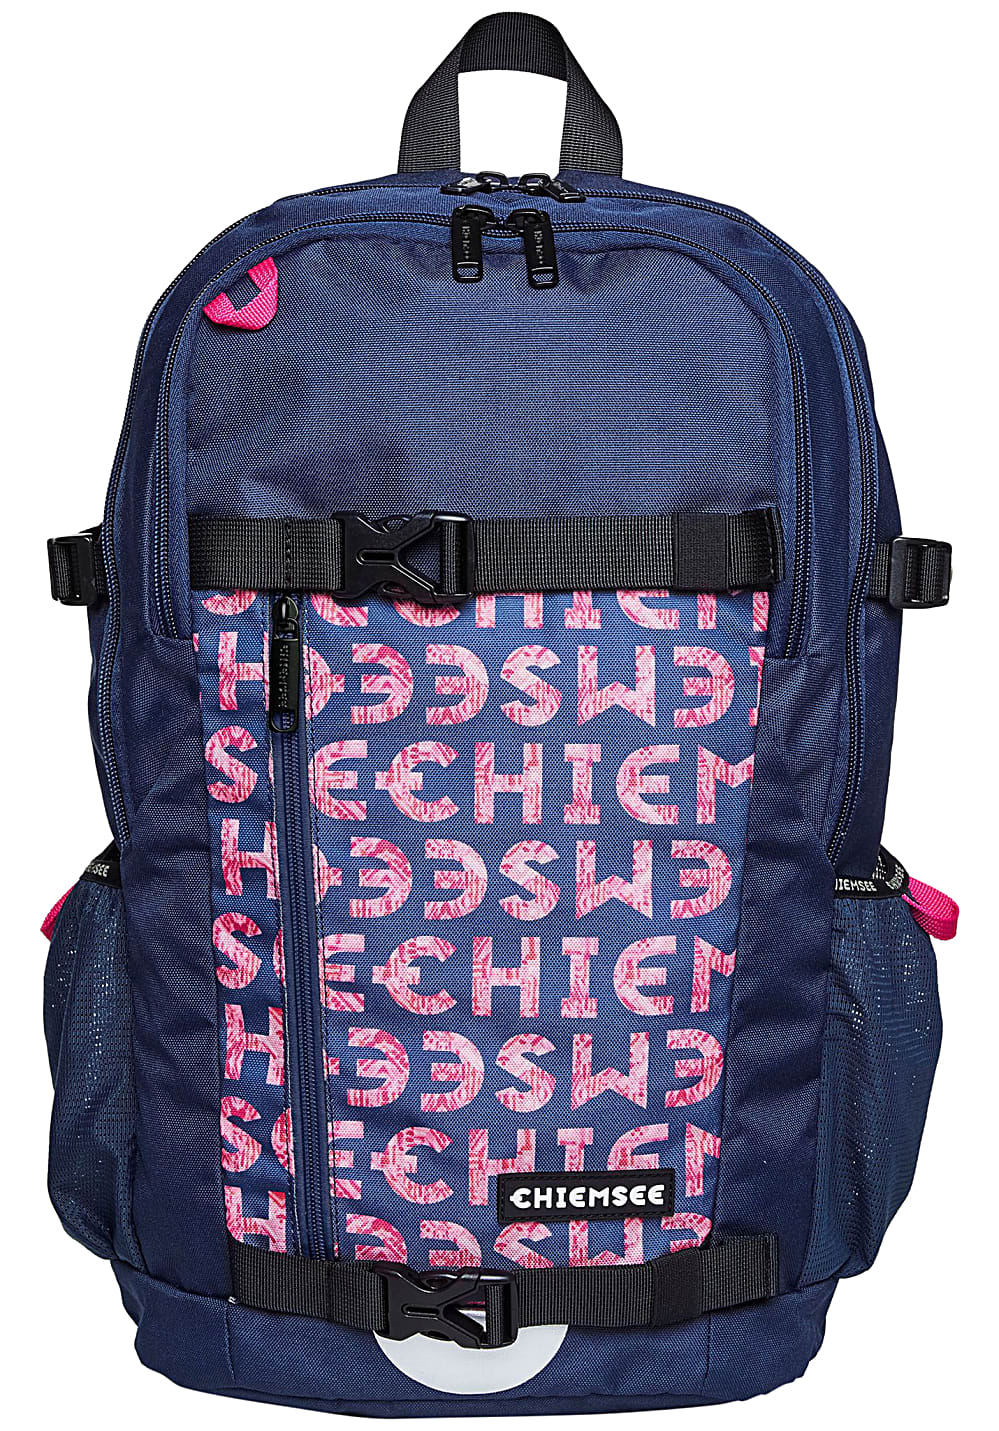 37d5475b72104a Chiemsee Rucksack - Backpack - Blue - Planet Sports